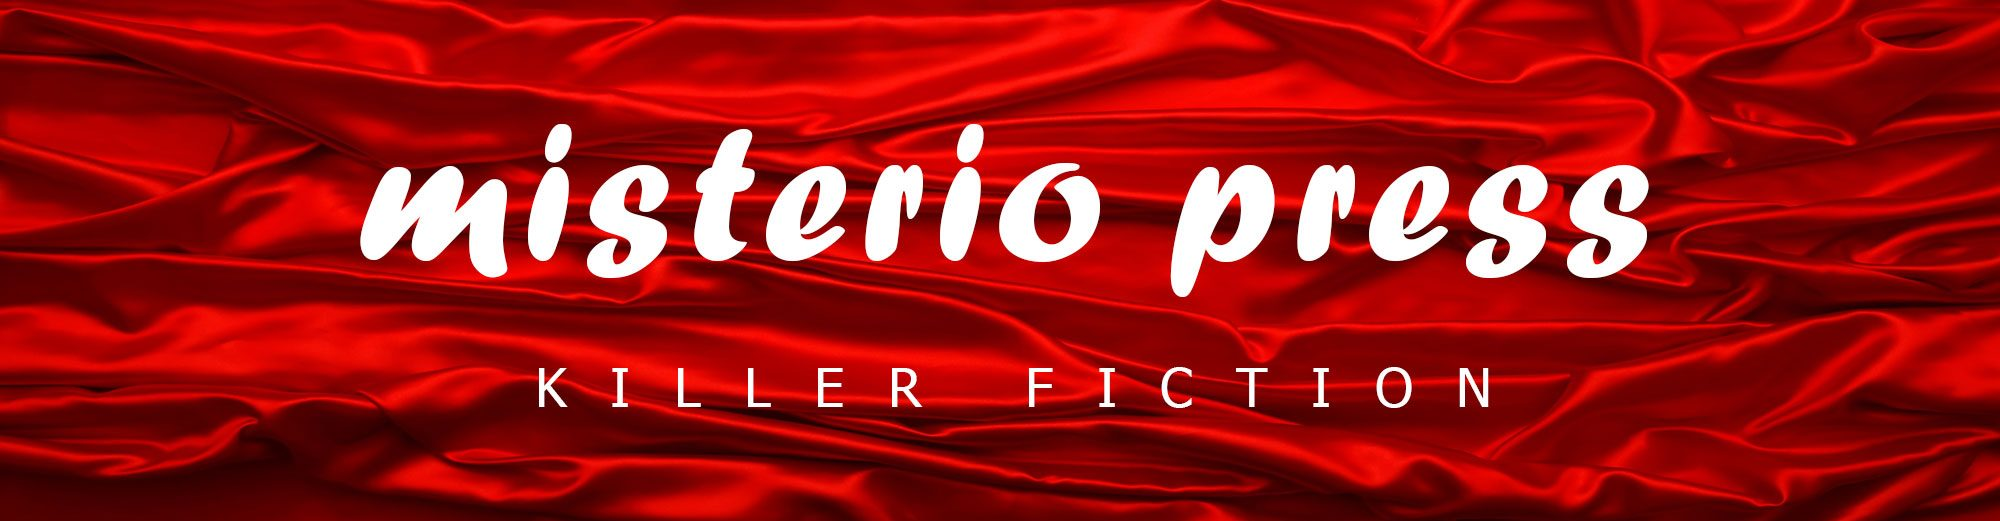 Misterio Press  Killer Fiction